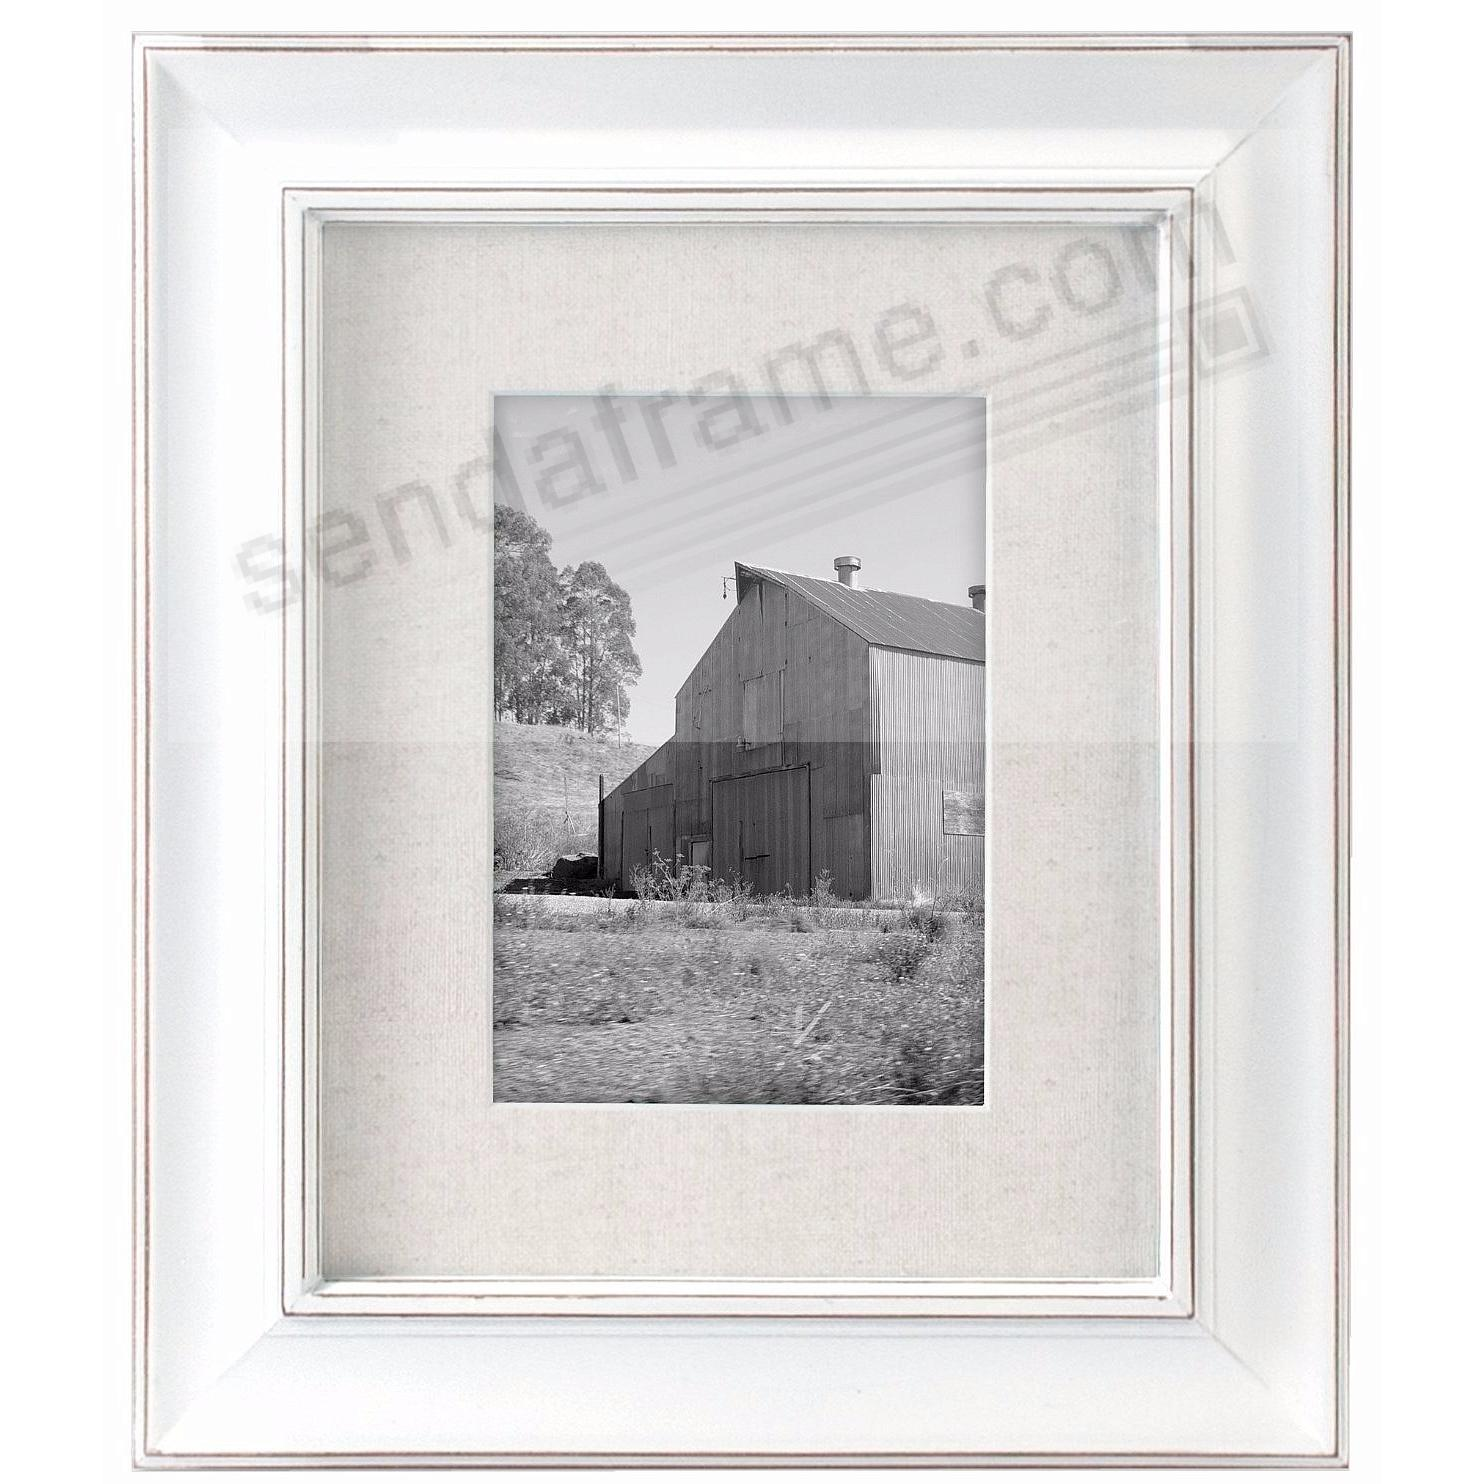 BARNSIDE WHITE 8x10/5x7 frame by Malden® - Picture Frames, Photo ...